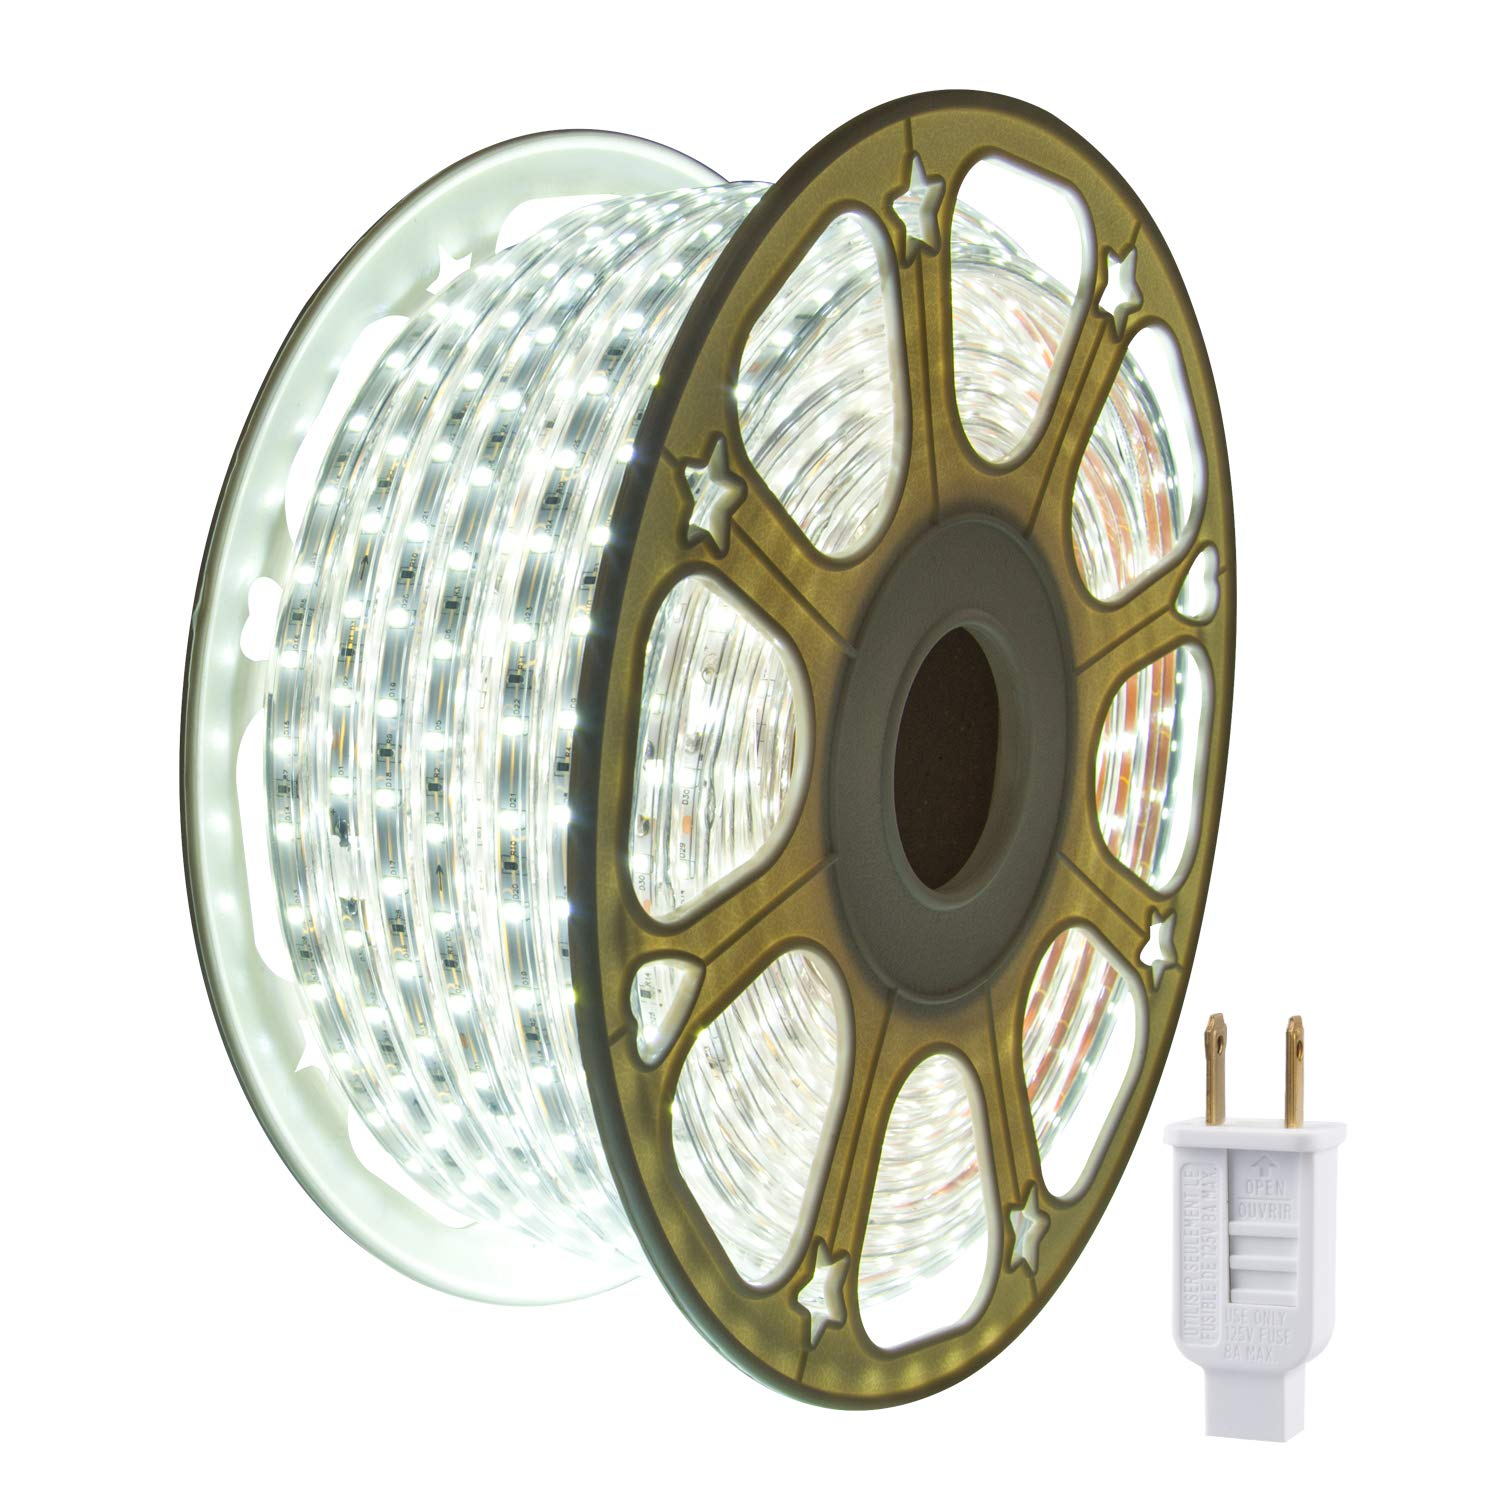 JUNWEN LED Strip Rope Lights,Outdoor,Indoor,Daylight White,Waterproof,2100LEDS,114FT/35M,Xmas Decorative,Plugin 110V, String Lighting, Flexible, SMD 2835,Connectable, Cuttable, Connector,Fuse Holder